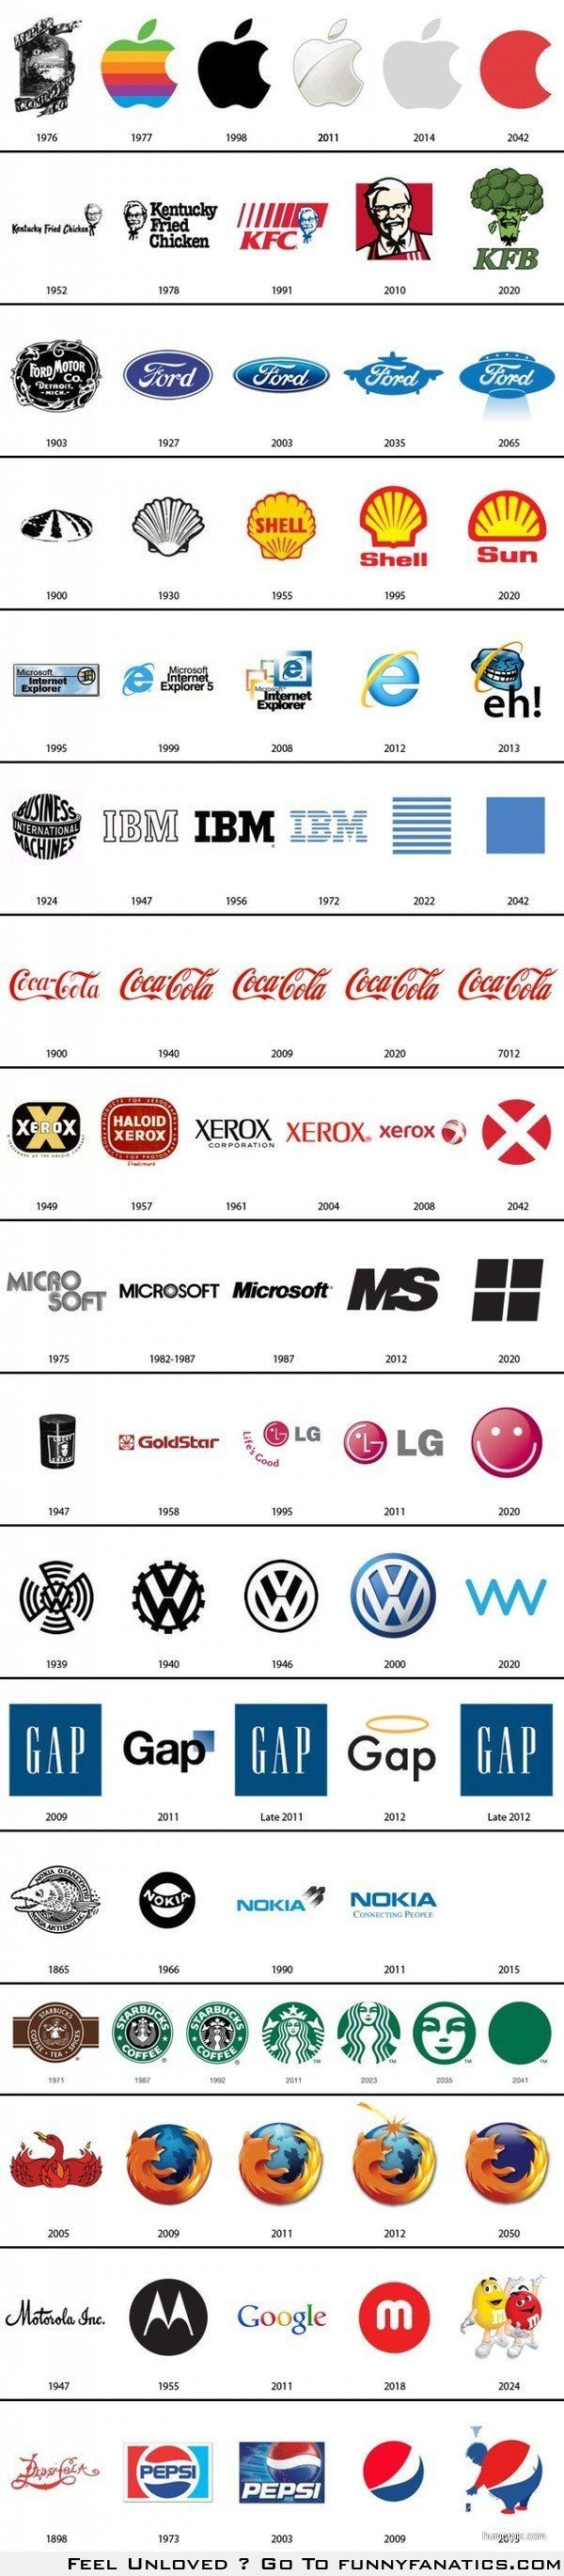 The evolution of the logo... This is too funny!